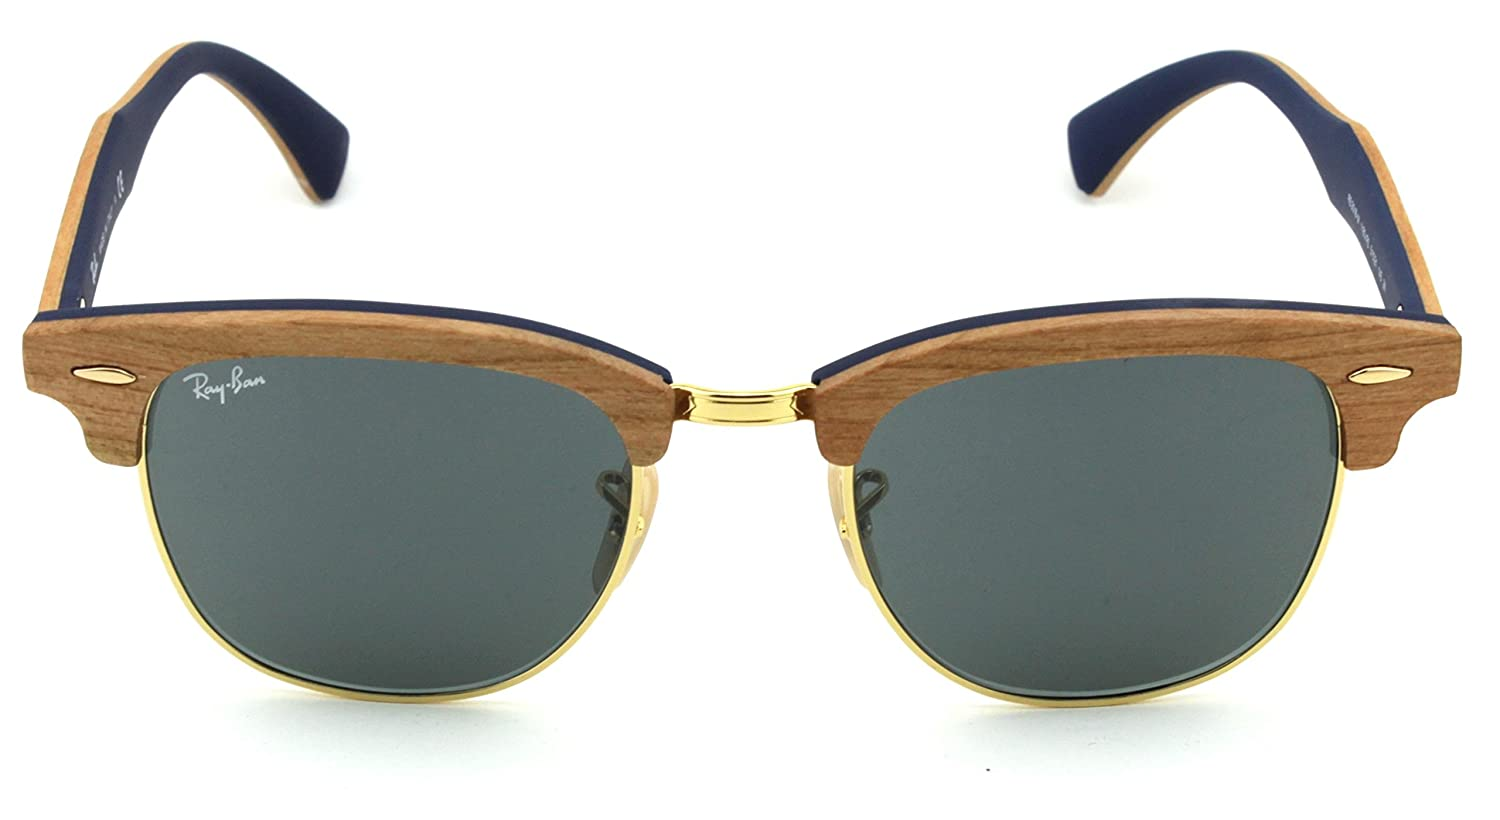 340df8d321 ... wholesale amazon ray ban rb3016m clubmaster wood unisex sunglasses  brown wood frame blue grey lens 1180r5